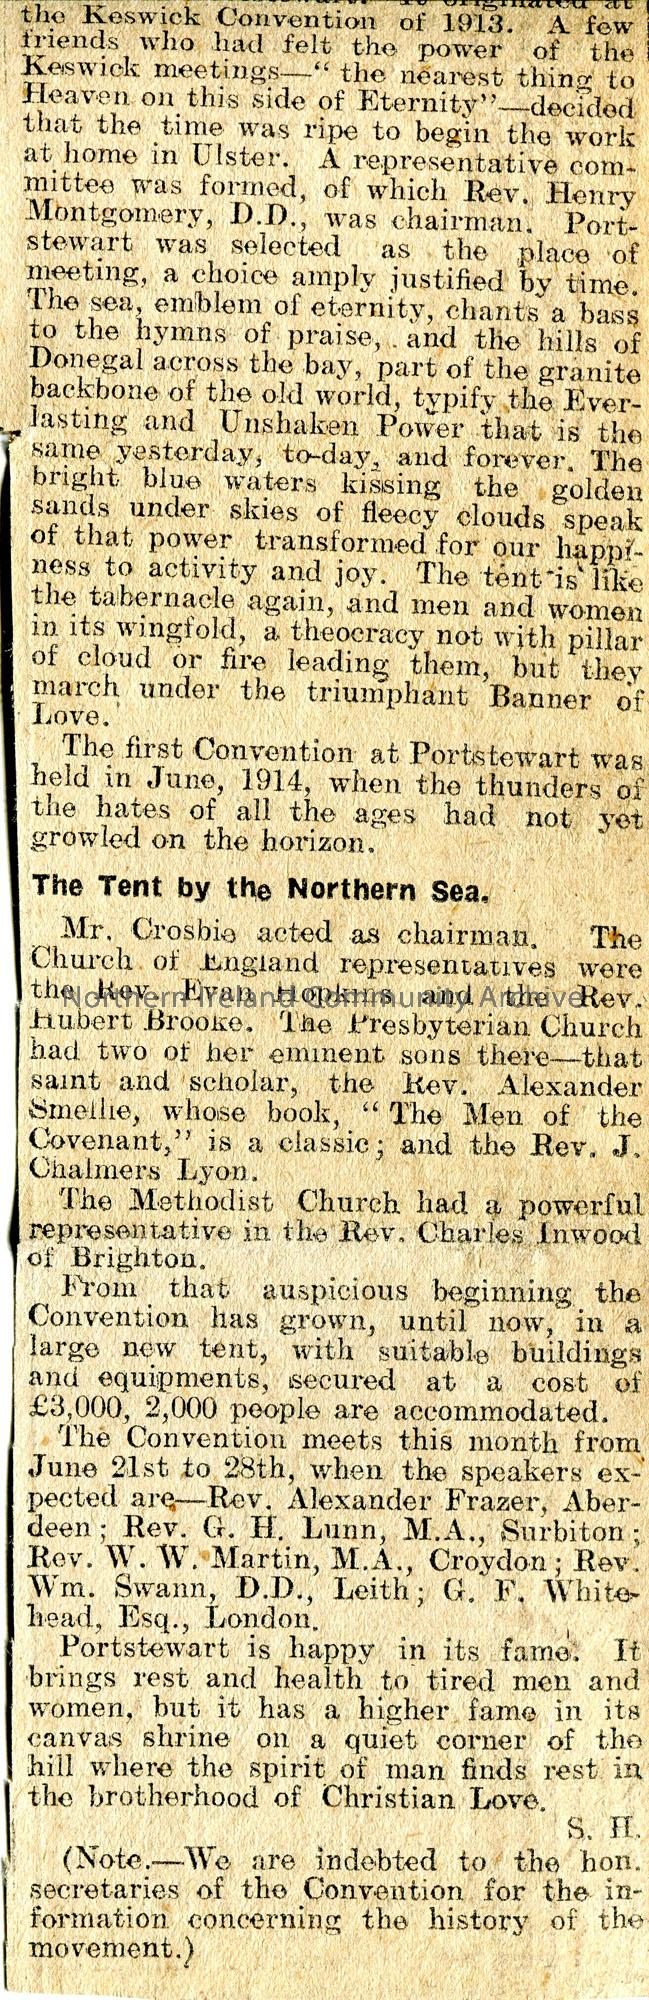 Article cut from the Northern Constitution newspaper and pasted to page. Titled, 'North of Ireland Keswick Convention. The History of a Great Crusade'… – scan112c